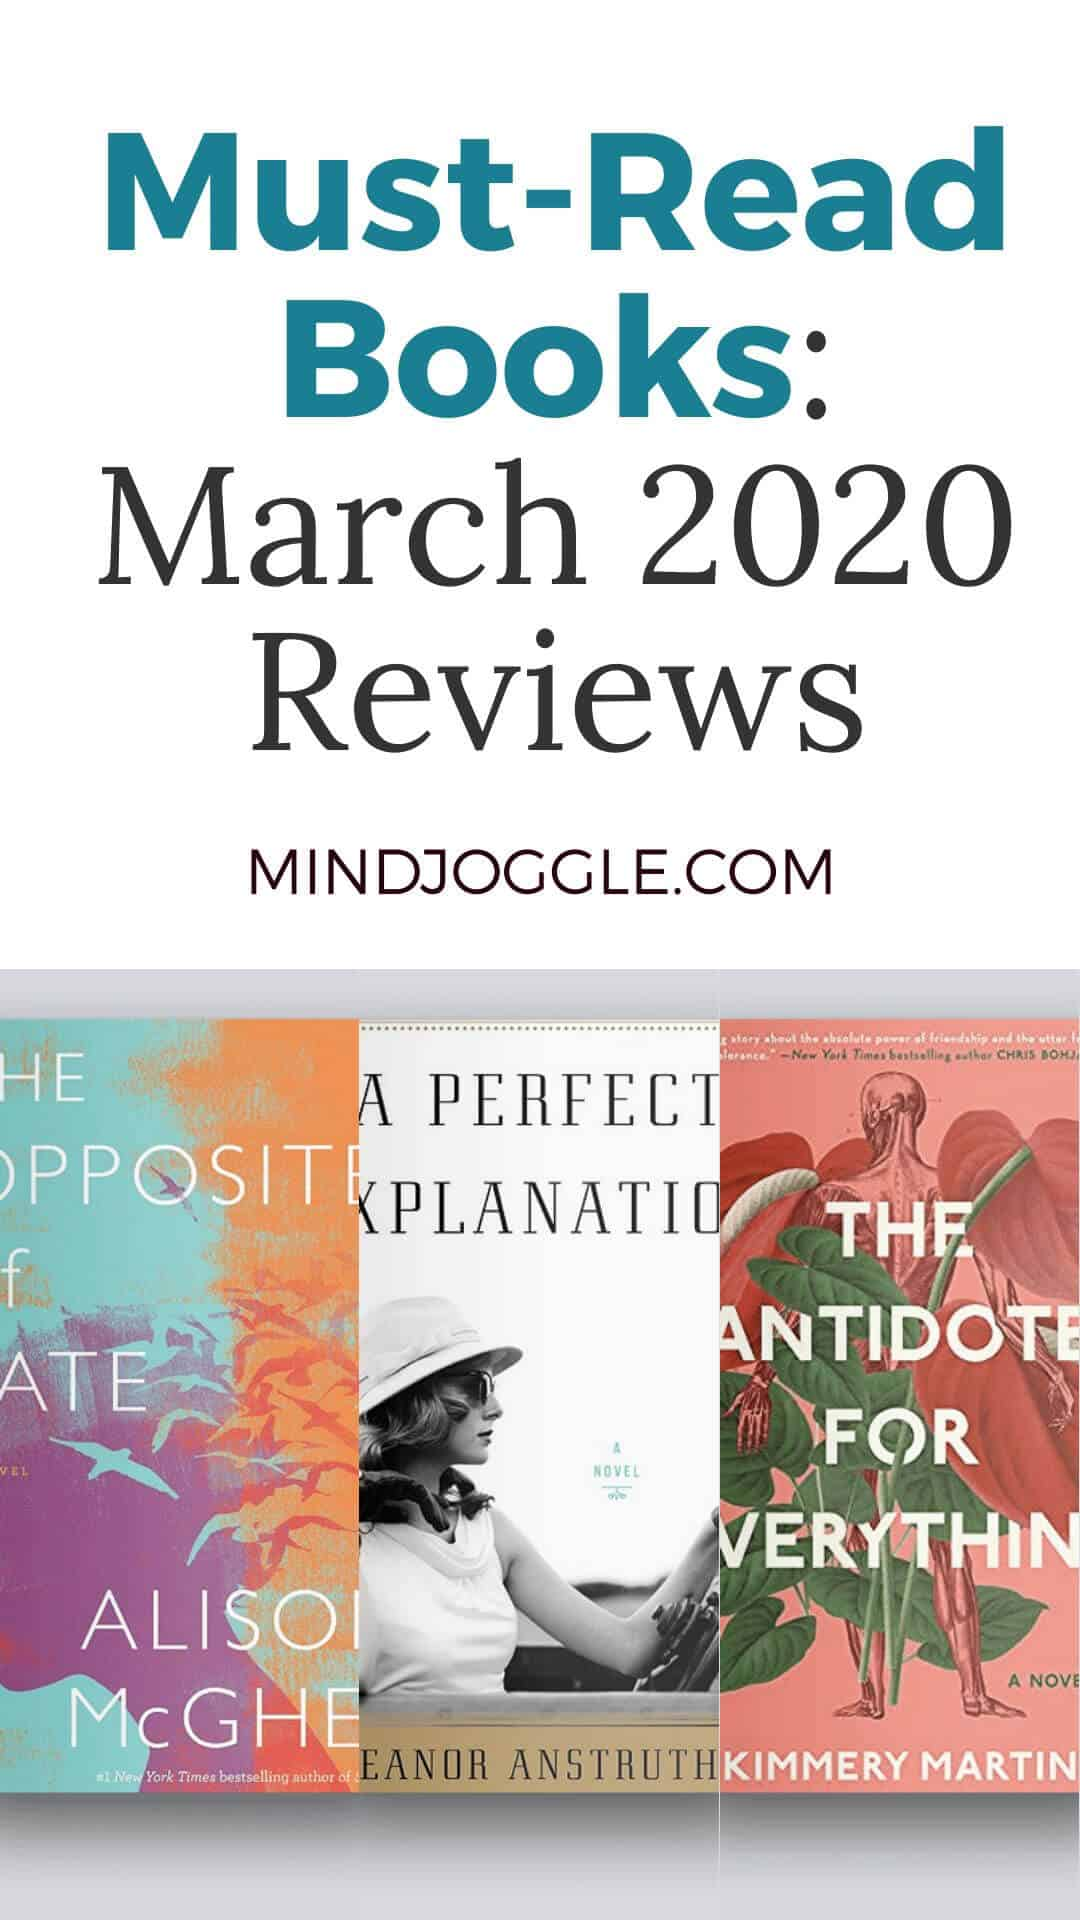 Must-Read Books: March 2020 Reviews